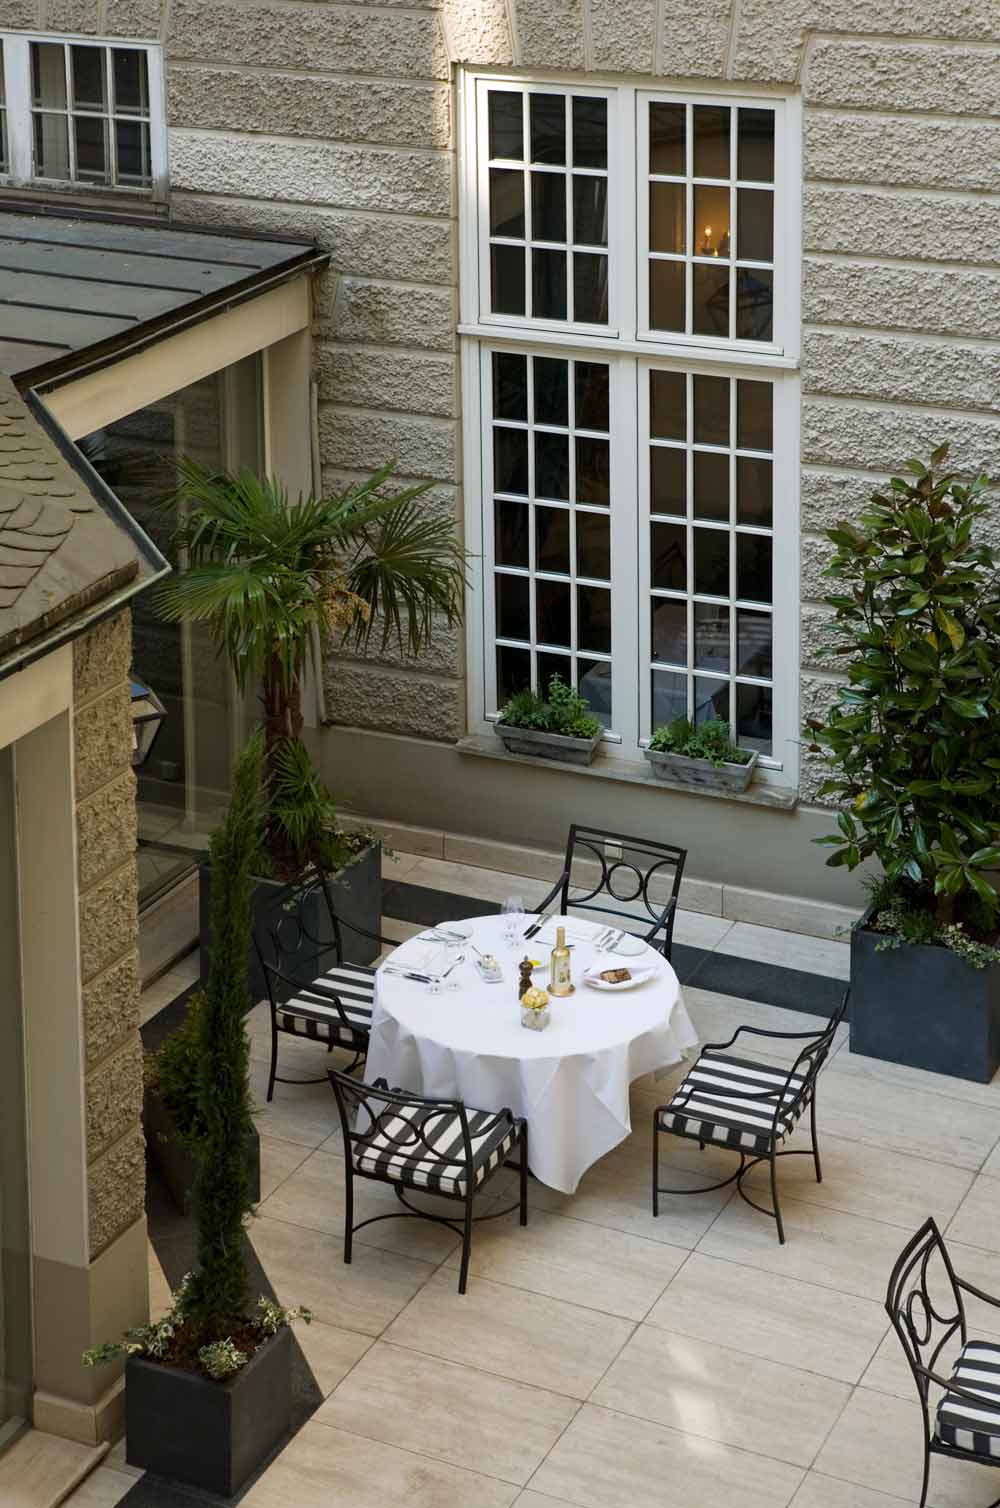 Courtyard Terrace at Excelsior Hotel Ernst in CologneNorth-Rhein WestphaliaGermany